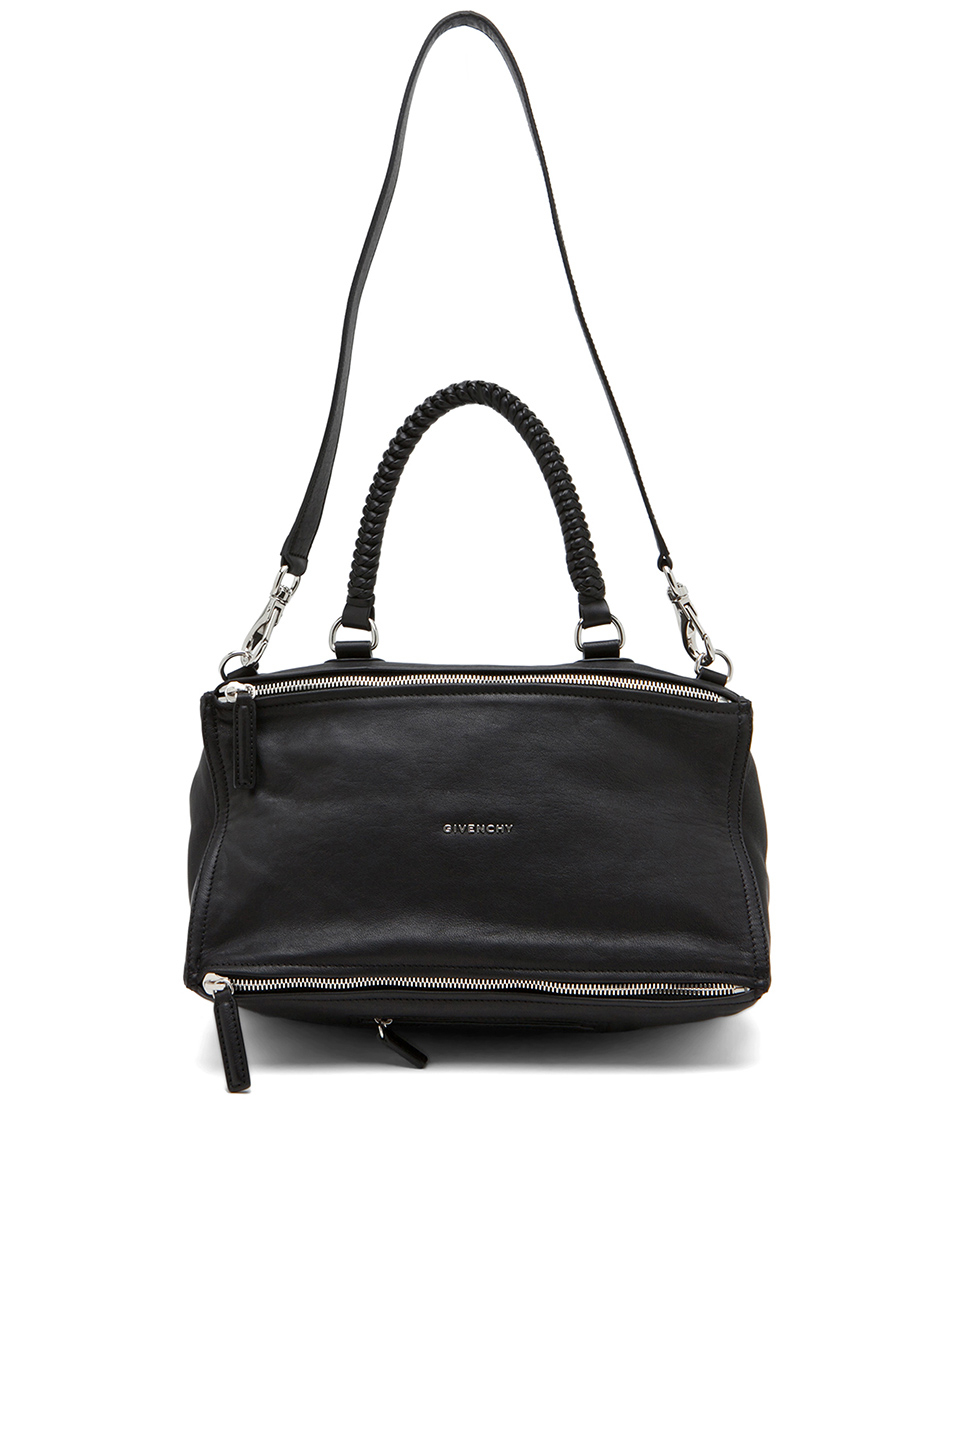 Givenchy Large Pandora In Black Lyst